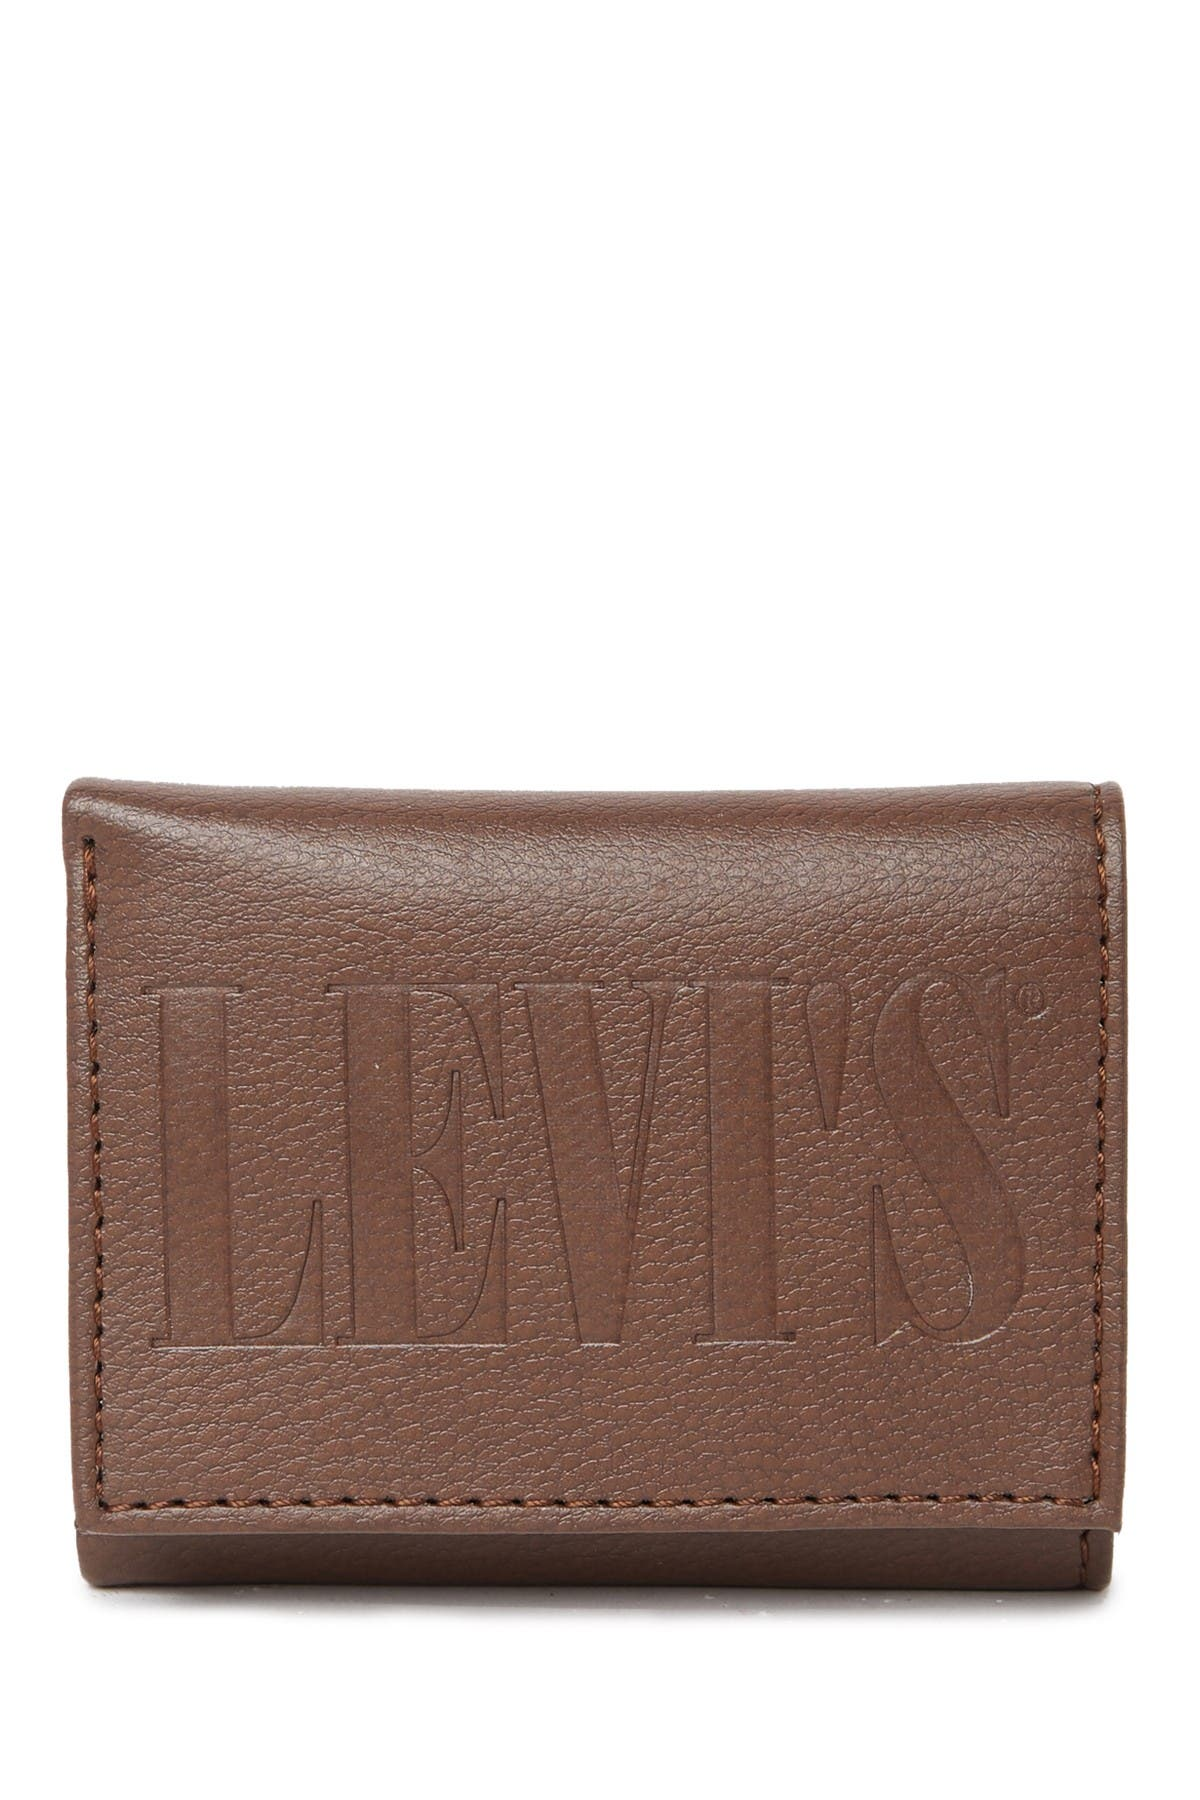 Image of Levi's Stallone RFID Trifold Wallet